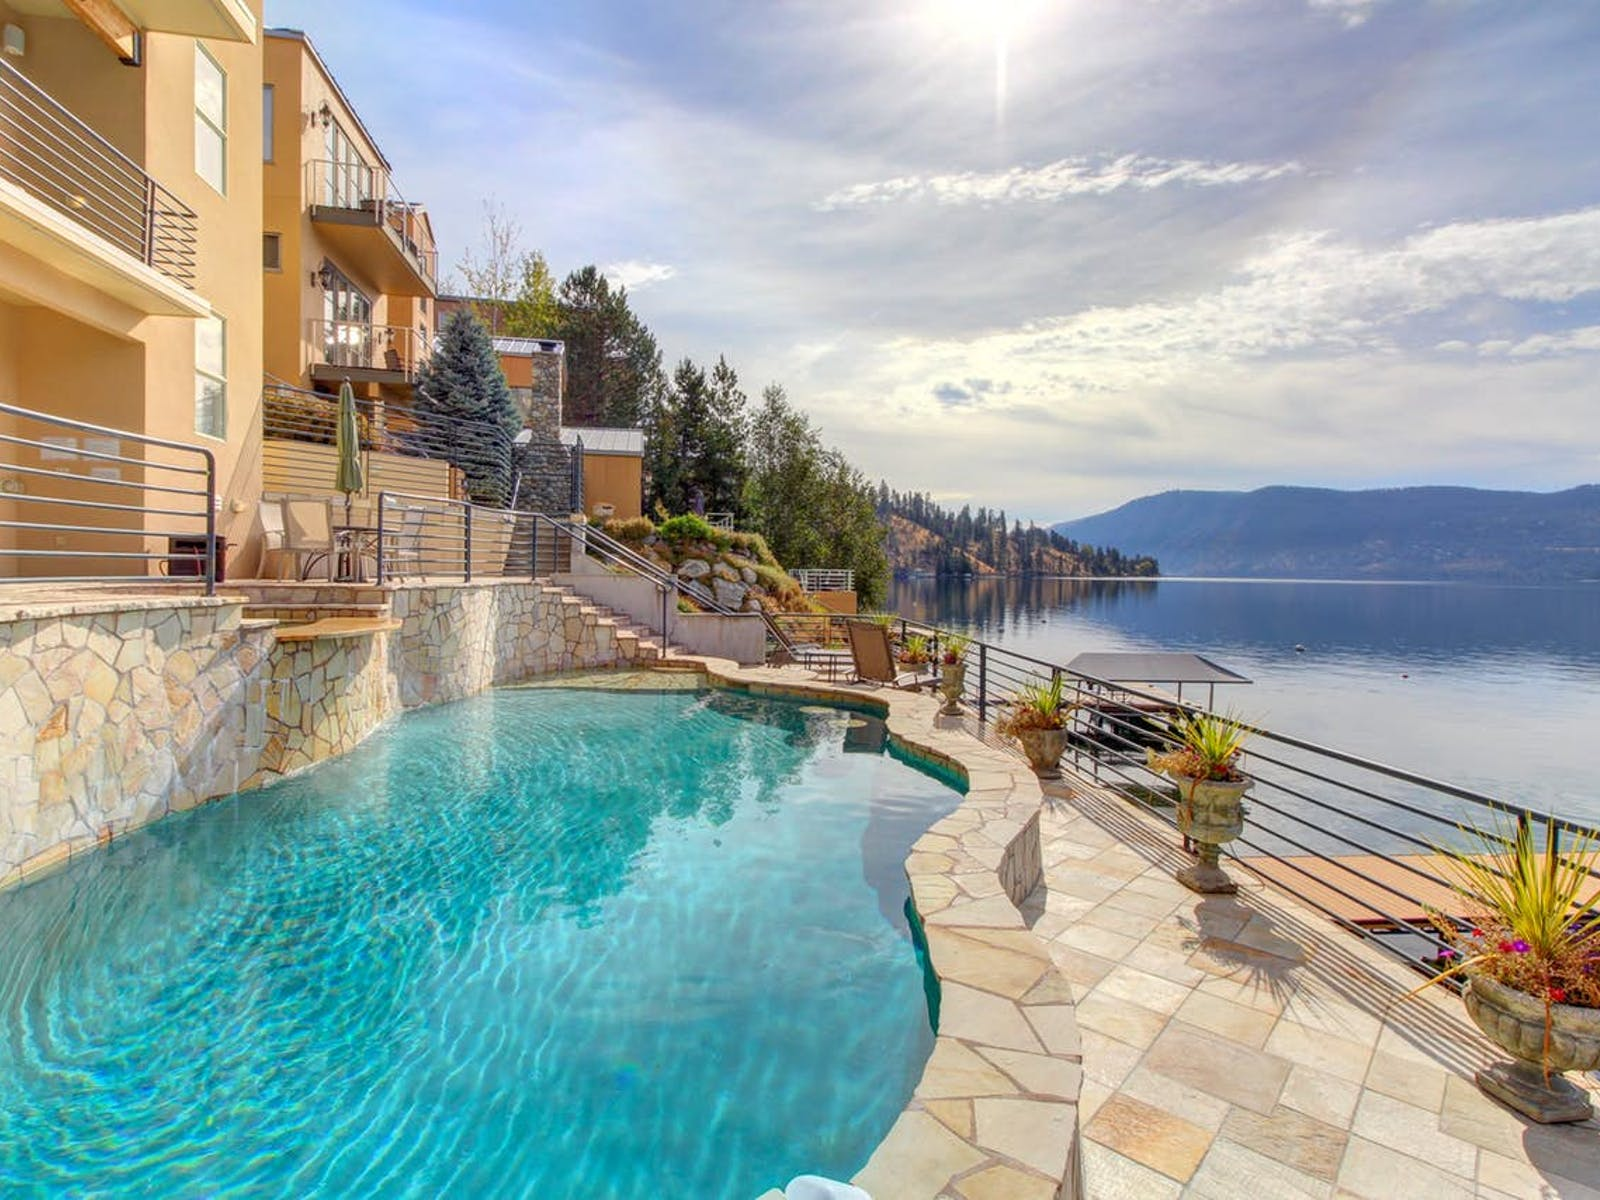 Lake Chelan waterfront vacation rental with a pool